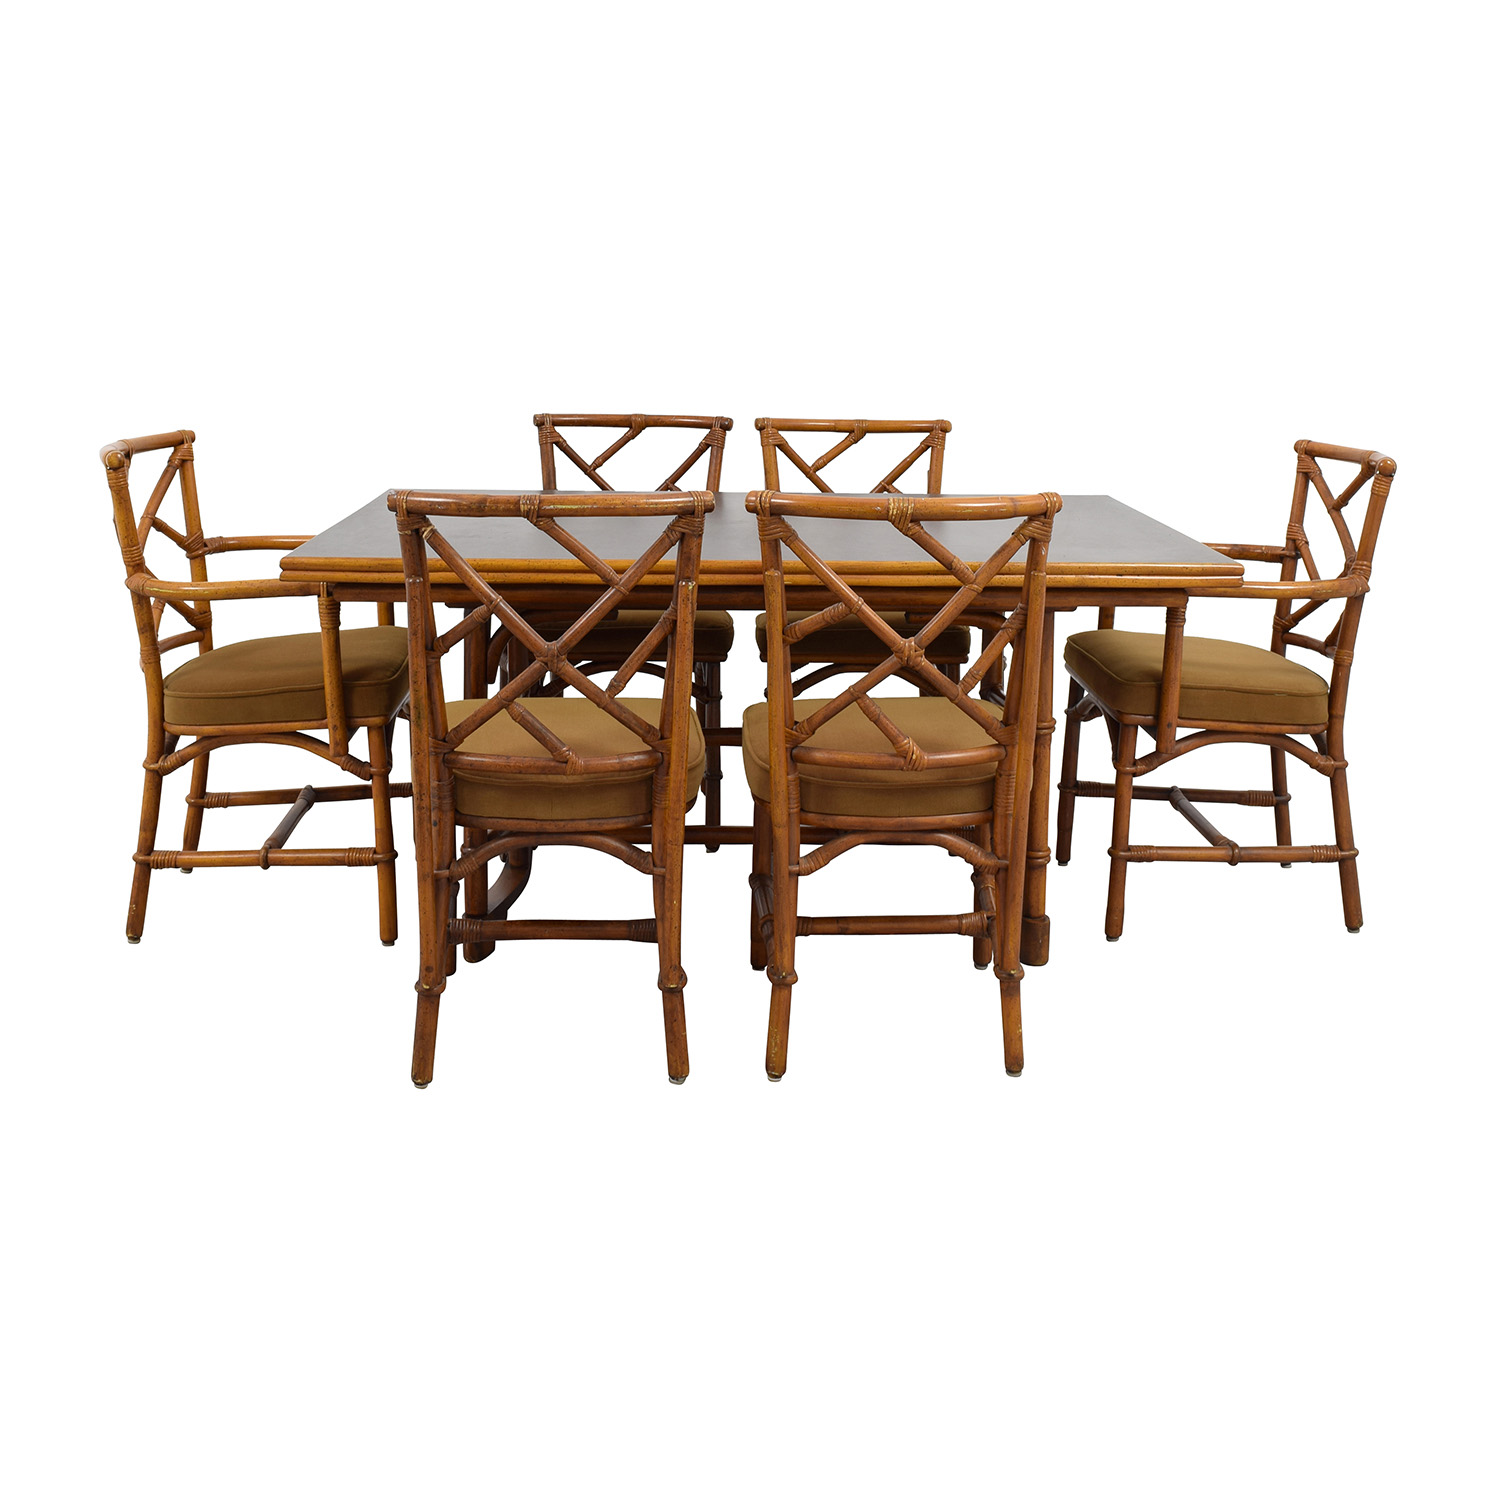 64 off bamboo dining set with six chairs tables for Six chair dining table set